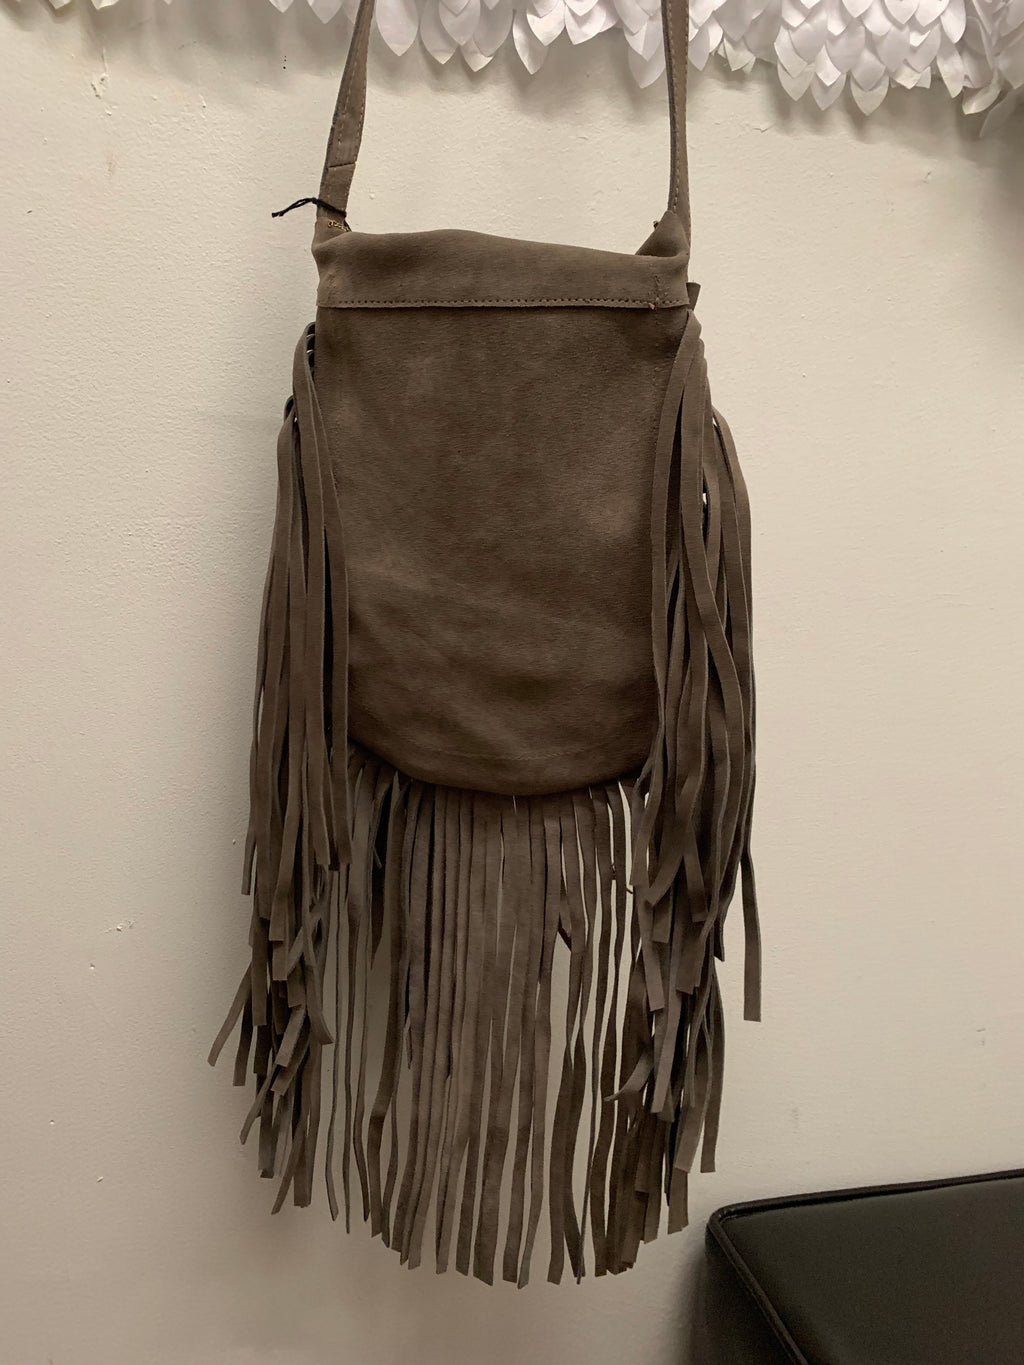 Tribal Multi Fringe Boho handbag